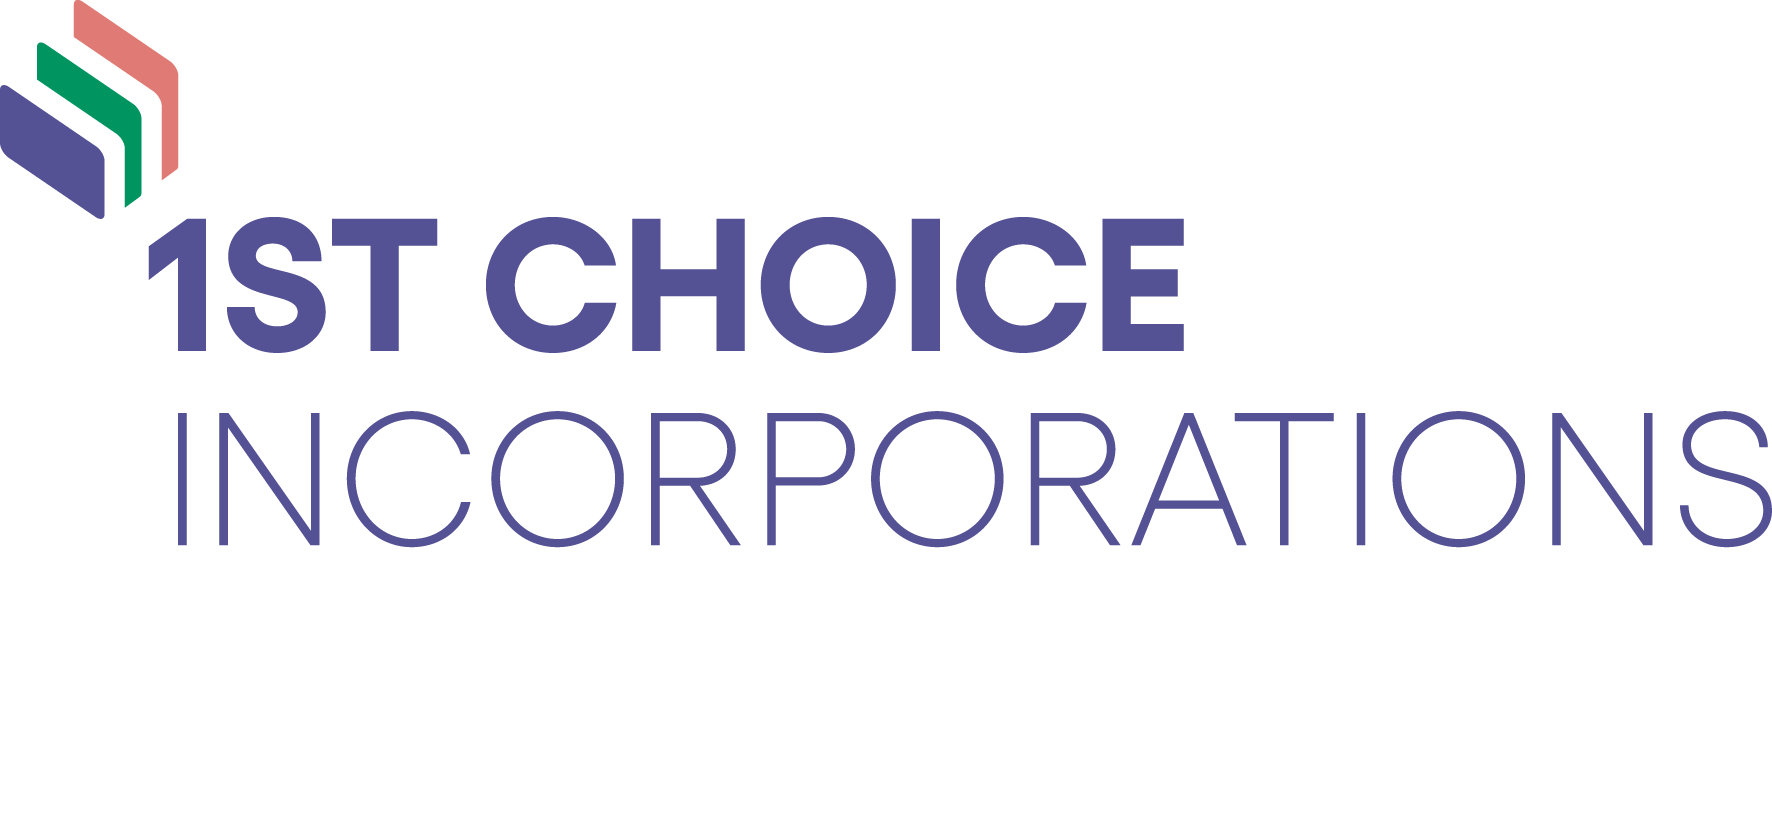 1st Choice Incorporations